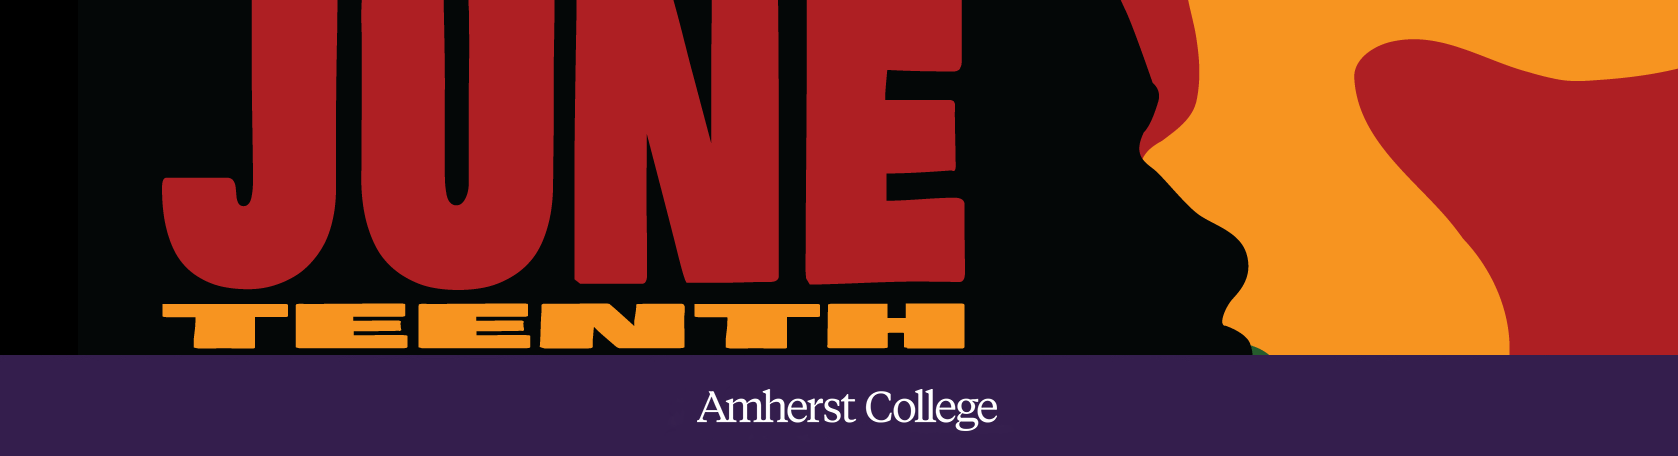 Amherst College Celebrates Juneteenth Freedom Day